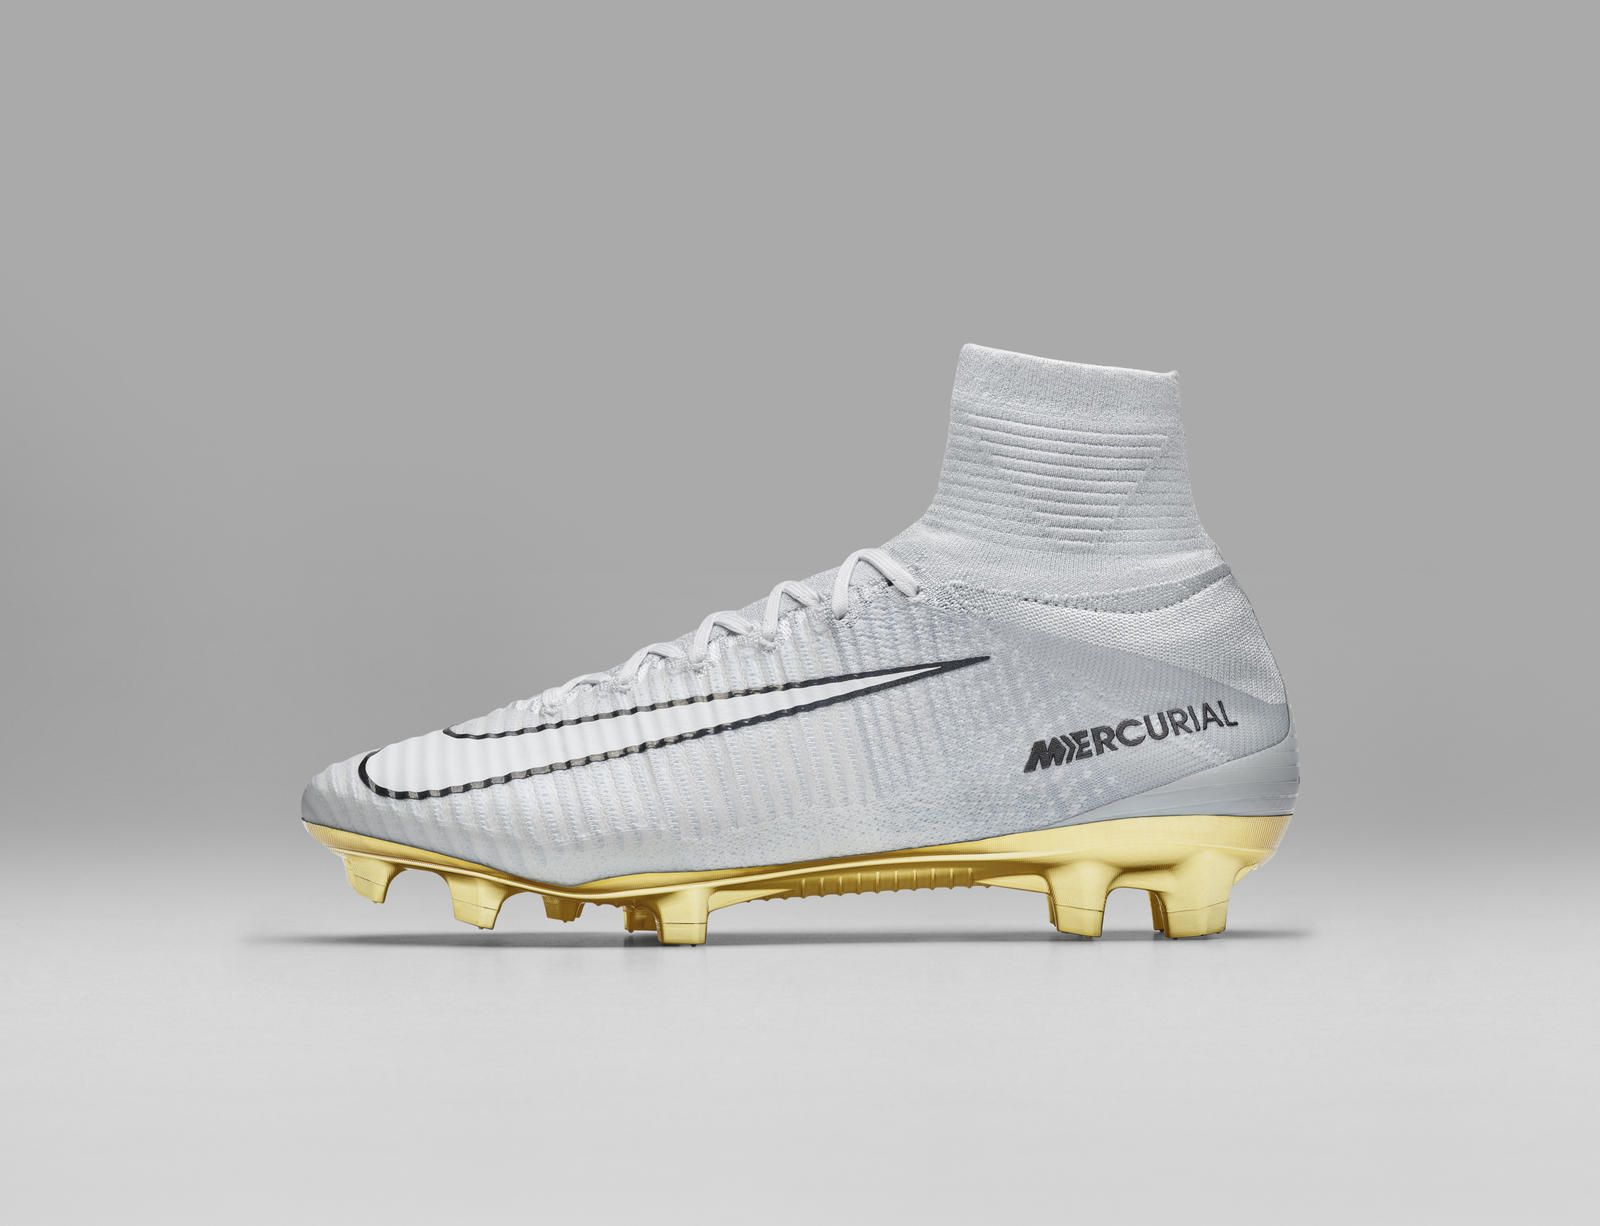 Nike News - Nike Pays Tribute to Cristiano Ronaldo's Tremendous Year With  Limited-Edition Mercurial